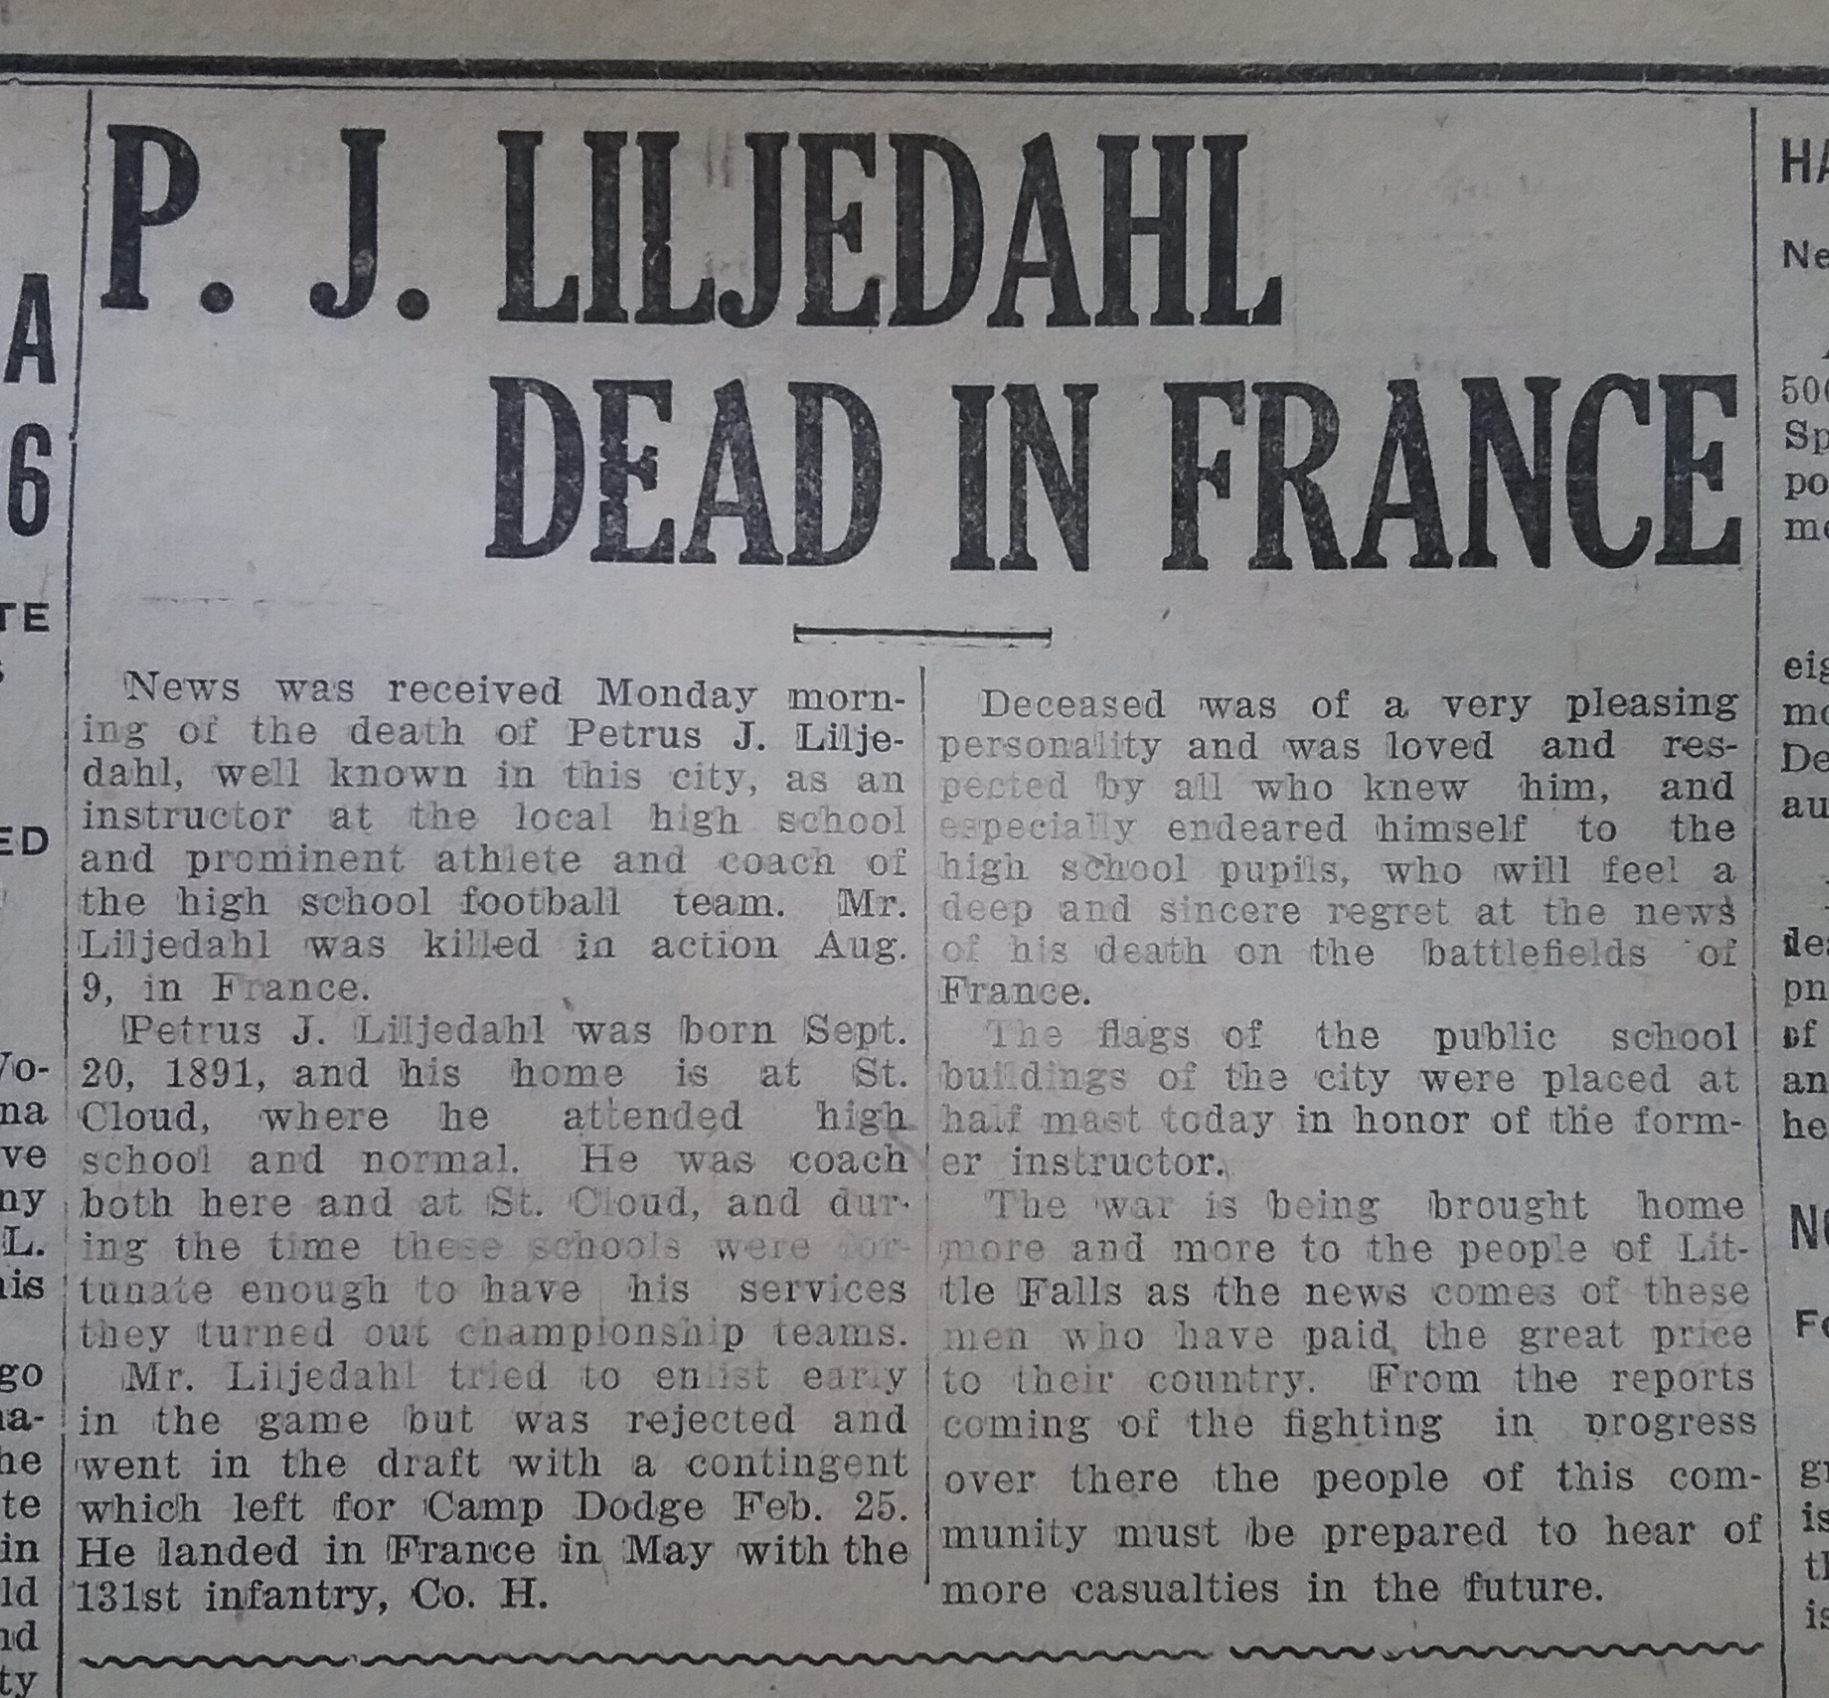 Announcement of Petrus Liljedahl's death from the Little Falls Daily Transcript, September 23, 1918.